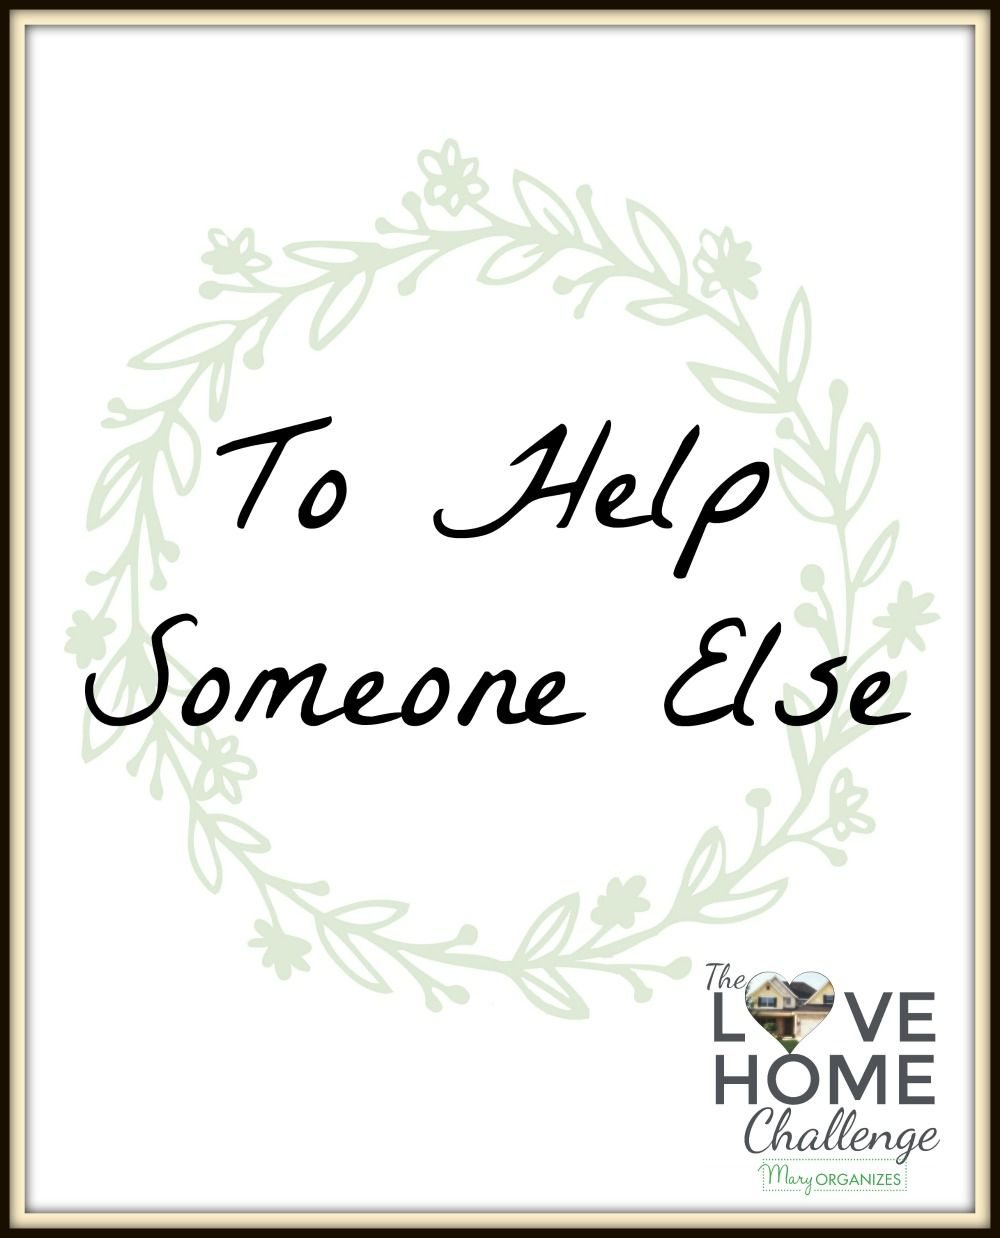 Week Six of the Love Home Challenge - To Help Someone Else.  This week's focus is really fun! We are going to think of a project that helps someone else in our home!   If you live alone, think about how you can make your home more welcoming and a better experience for your guests!